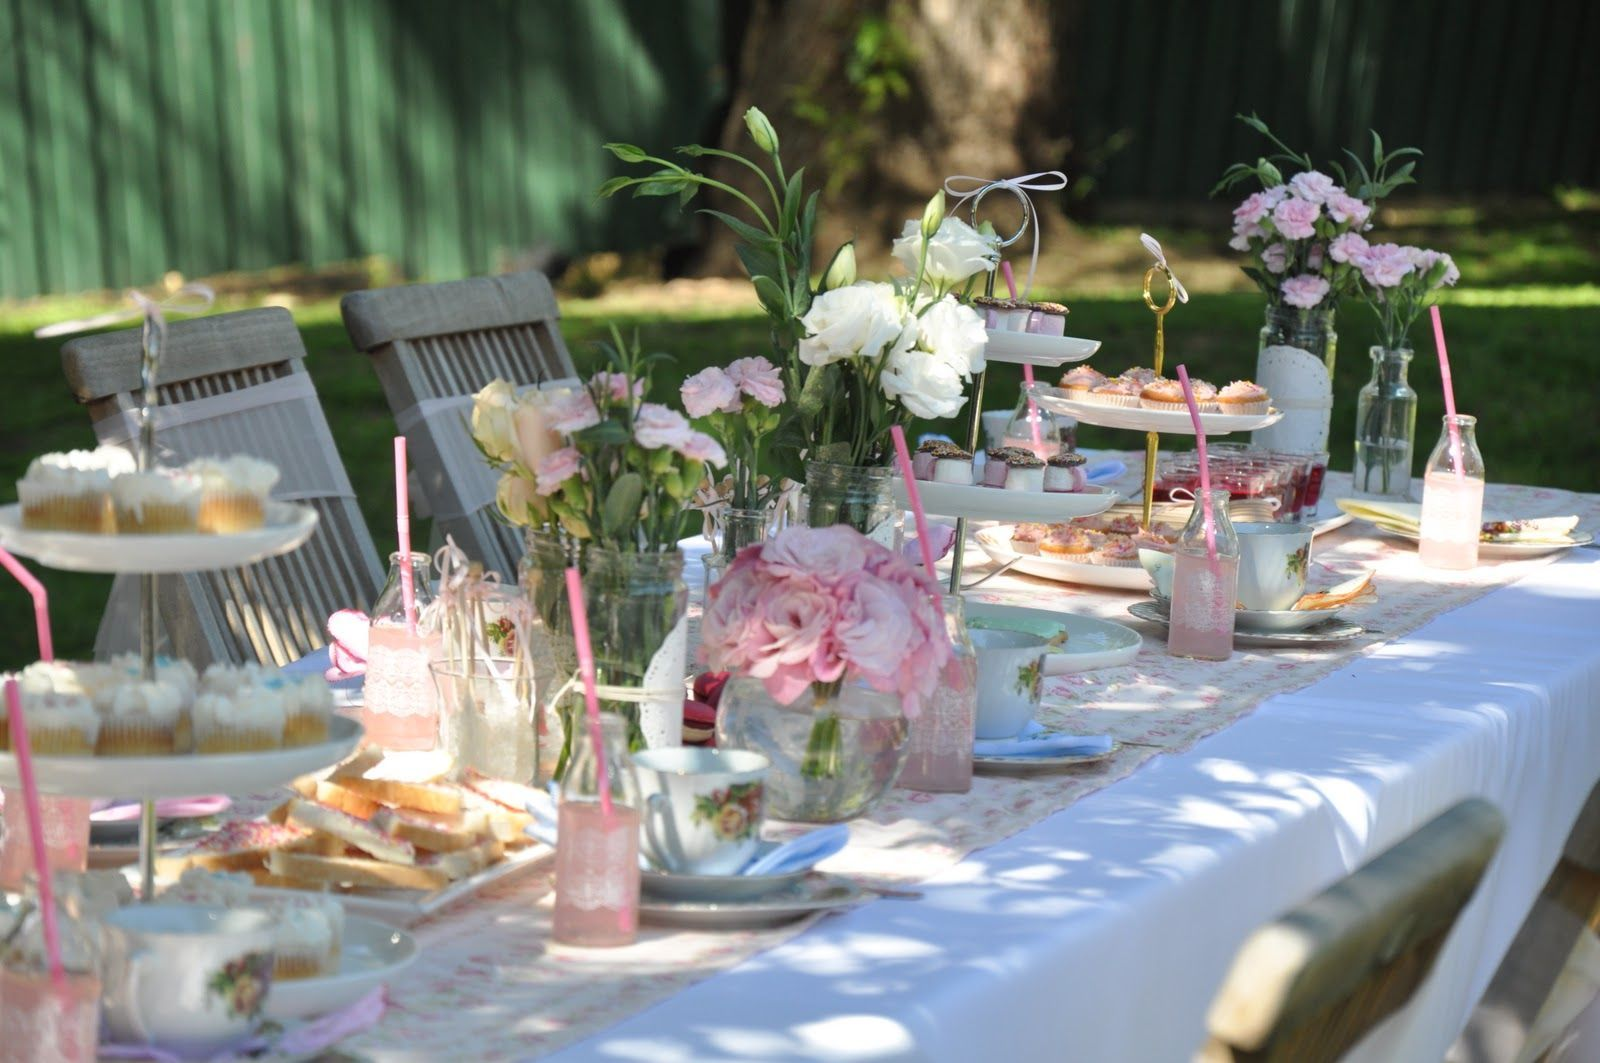 Are You Planning A Garden Party For Special Occasion To Organize If So We Can Help With Some Impressive Ideas Striking Table Decorations